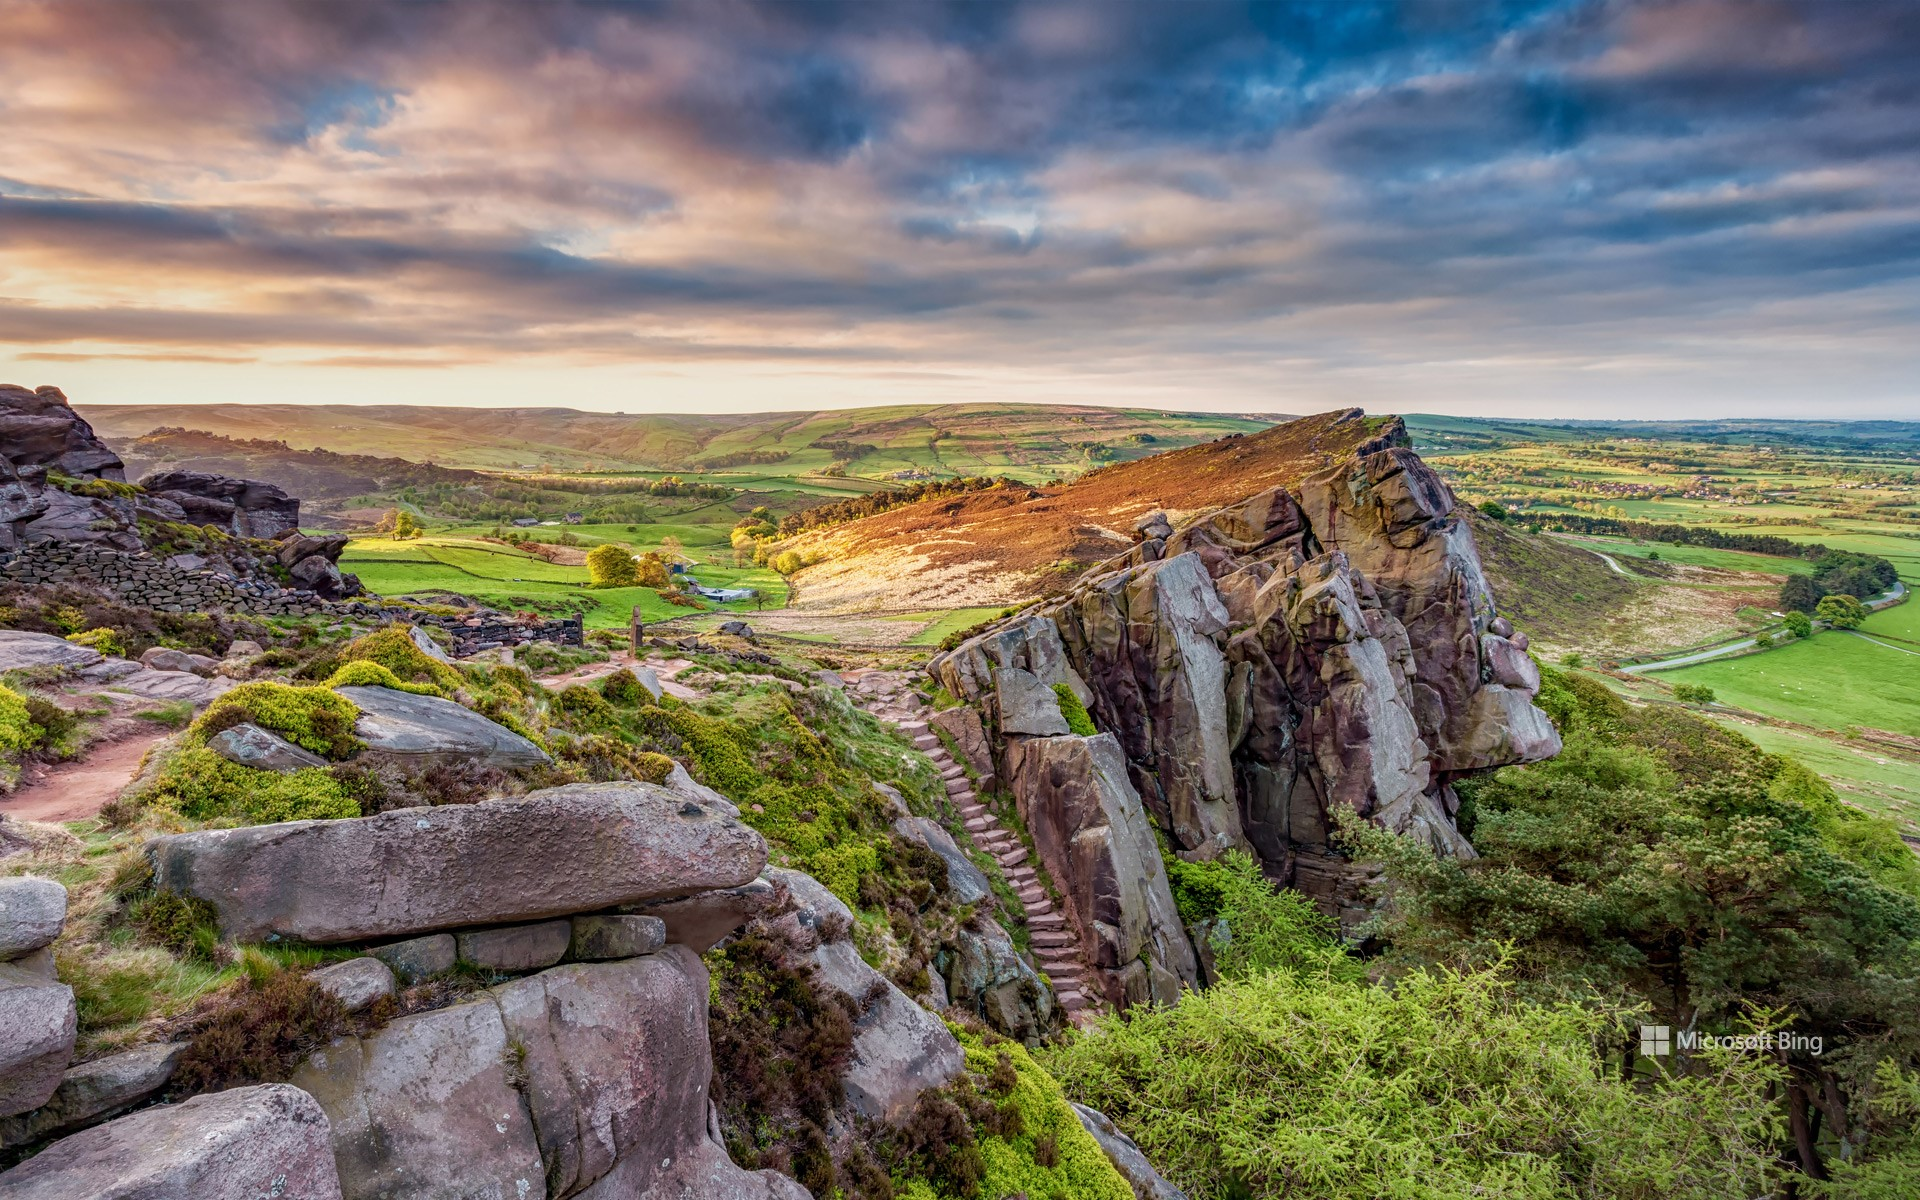 View of the rocky gritstone edge of The Roaches looking over the patchwork landscape, Peak District, Staffordshire.